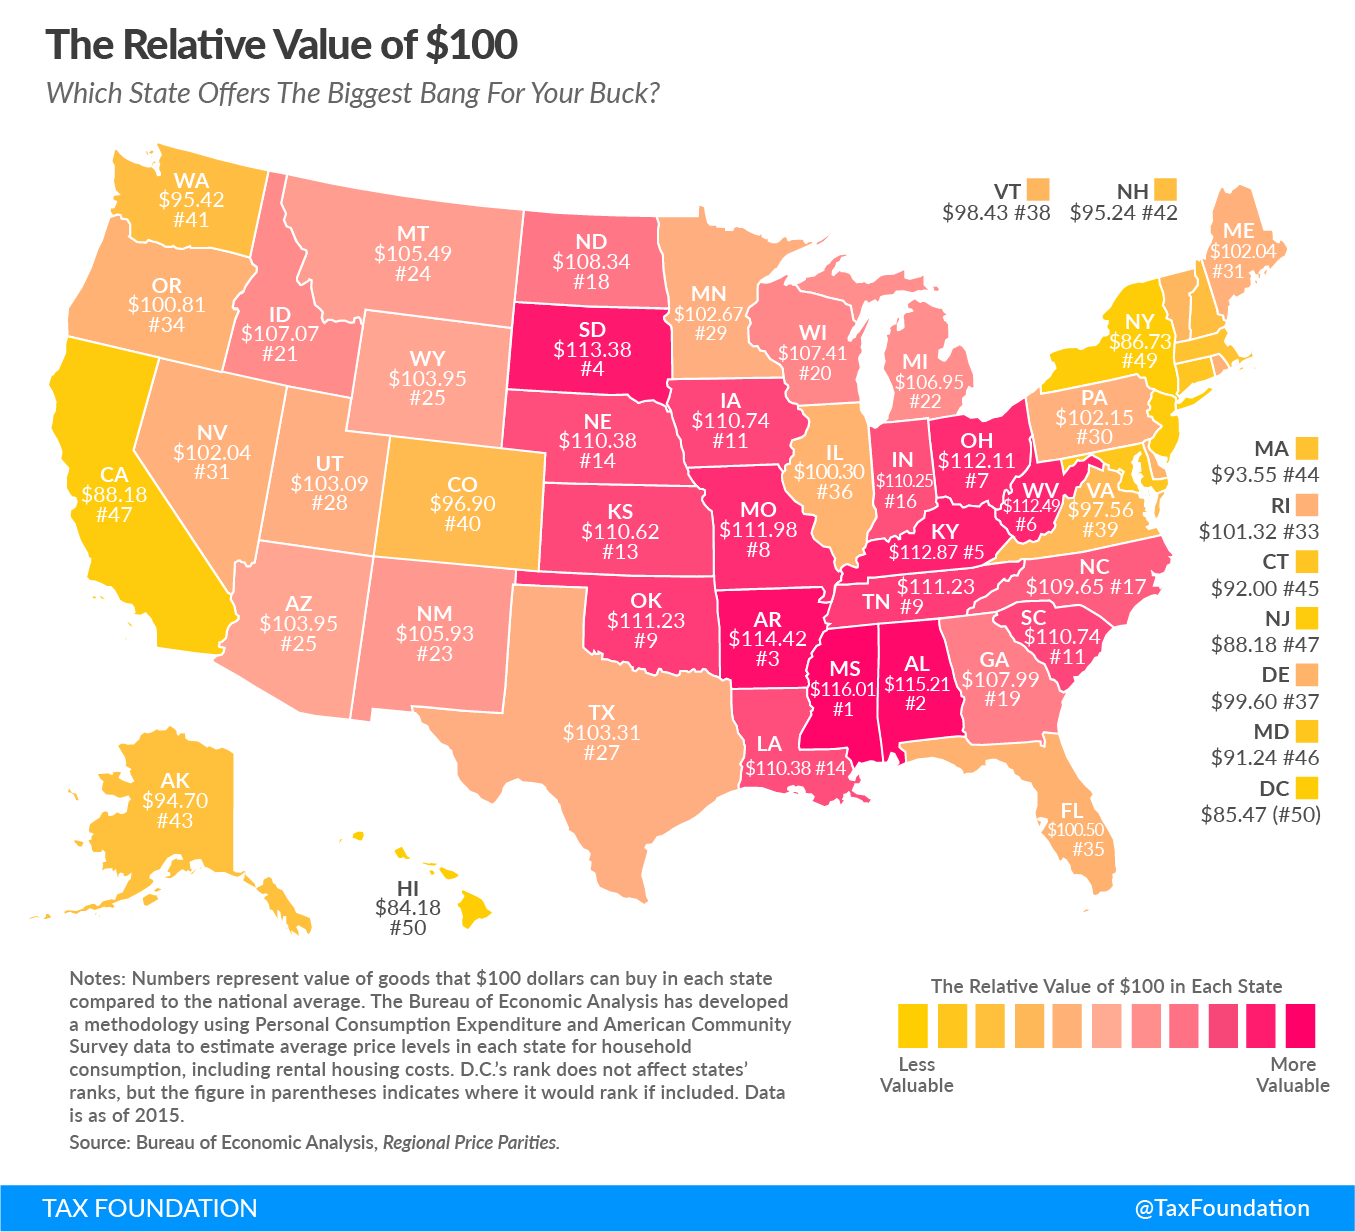 Cost Of Living By State Maps Us States Cost Of Living State Map - Cost-of-living-us-map